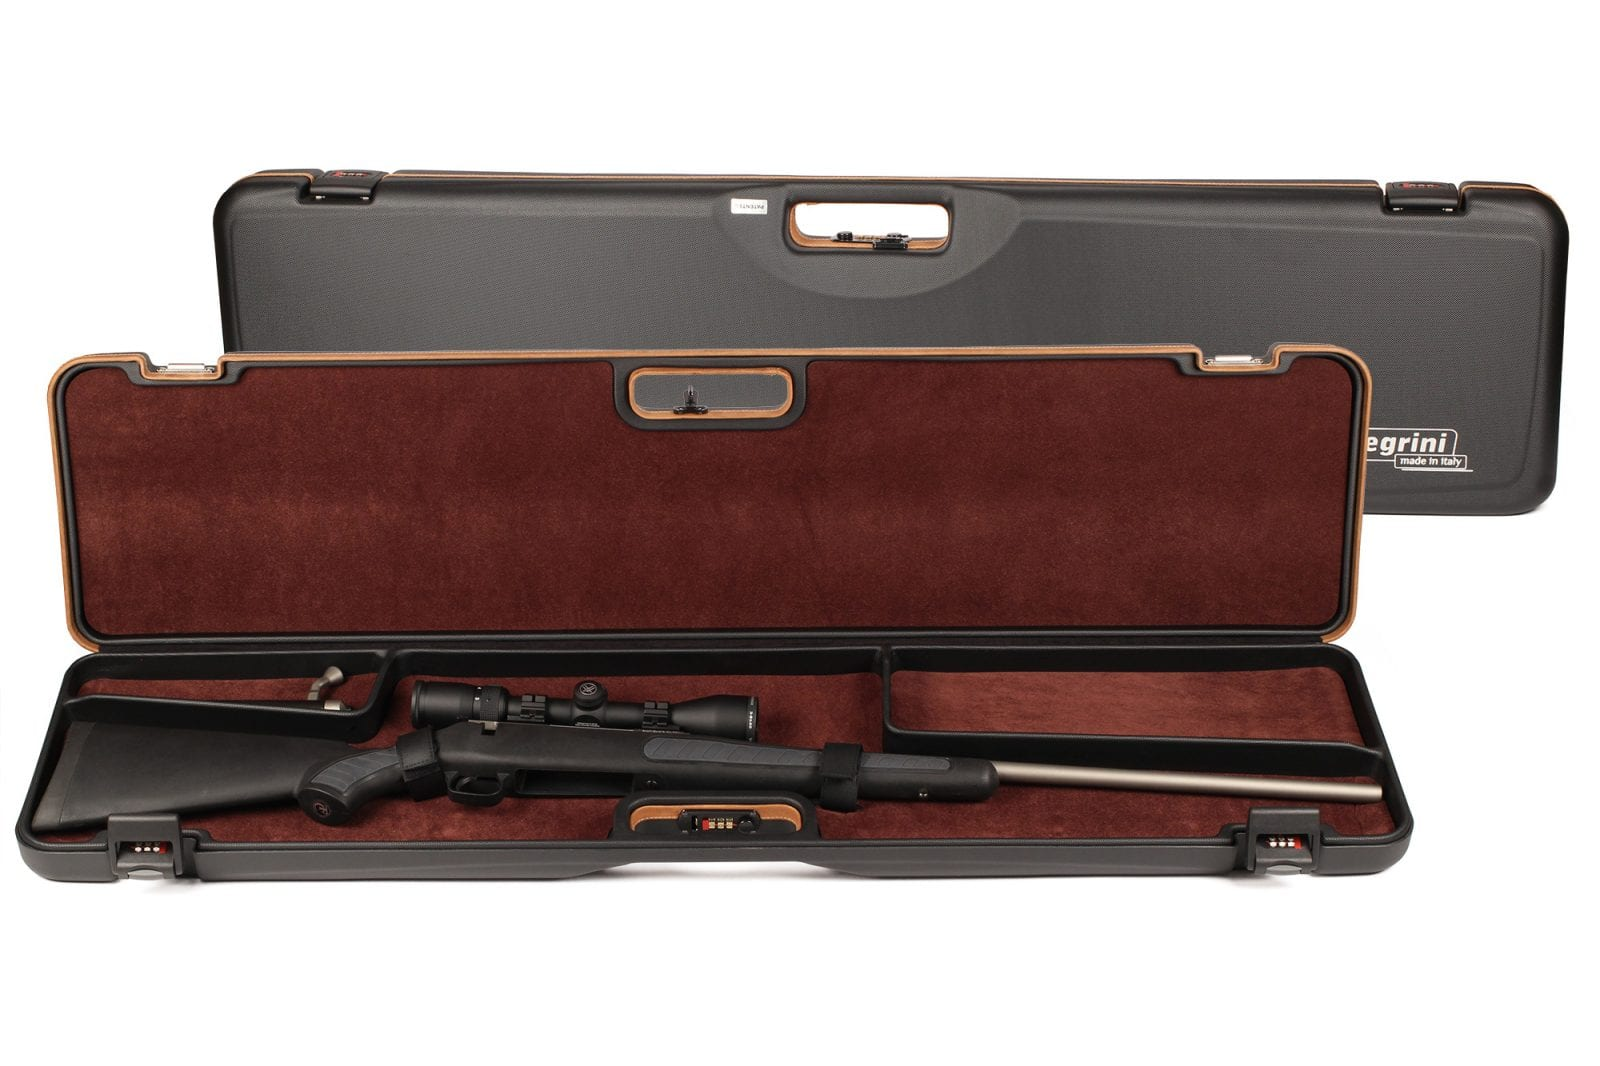 Negrini 1619LUNG/5517 Compact Bolt Action Rifle Case